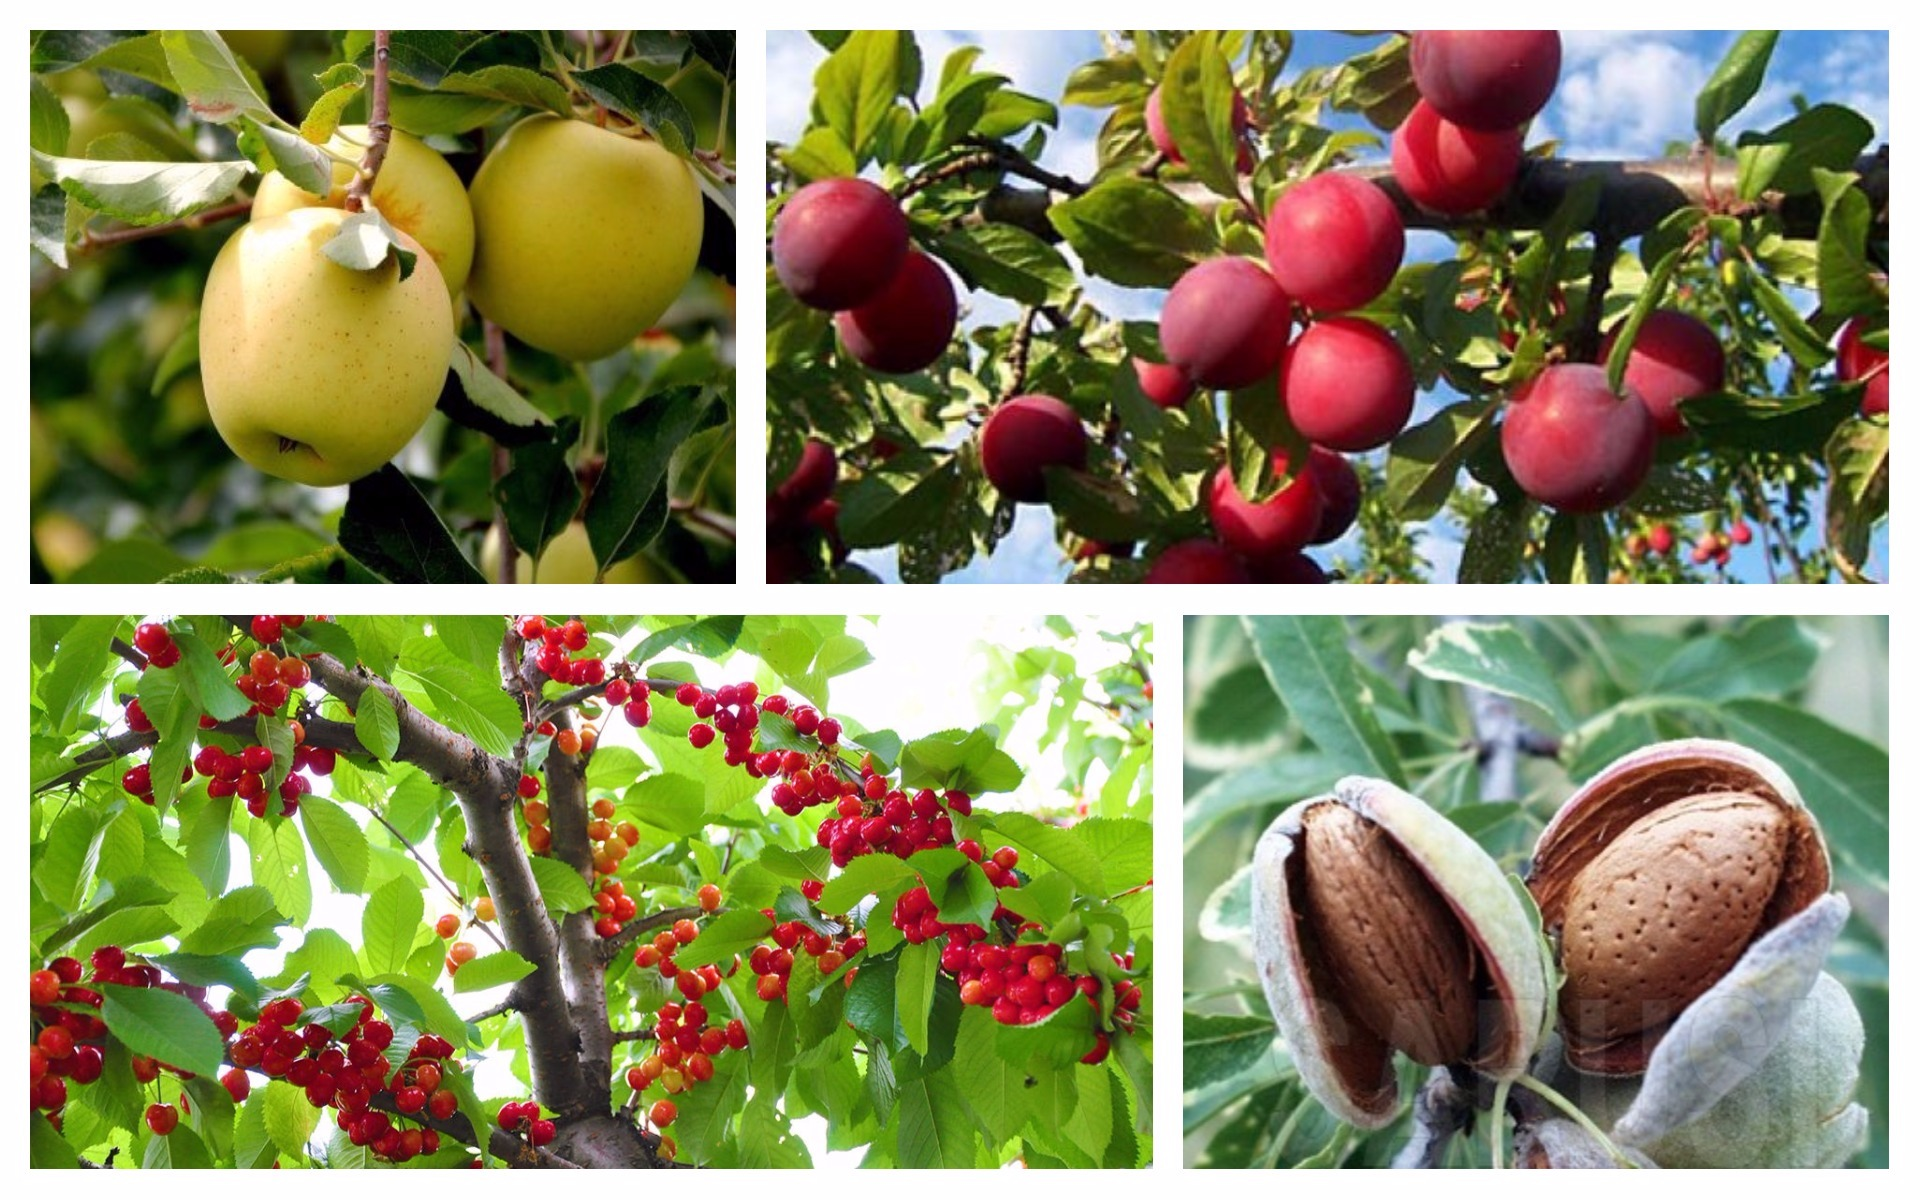 Fruit trees for every type of weather the best choices in your area - Fruit trees every type weather area ...